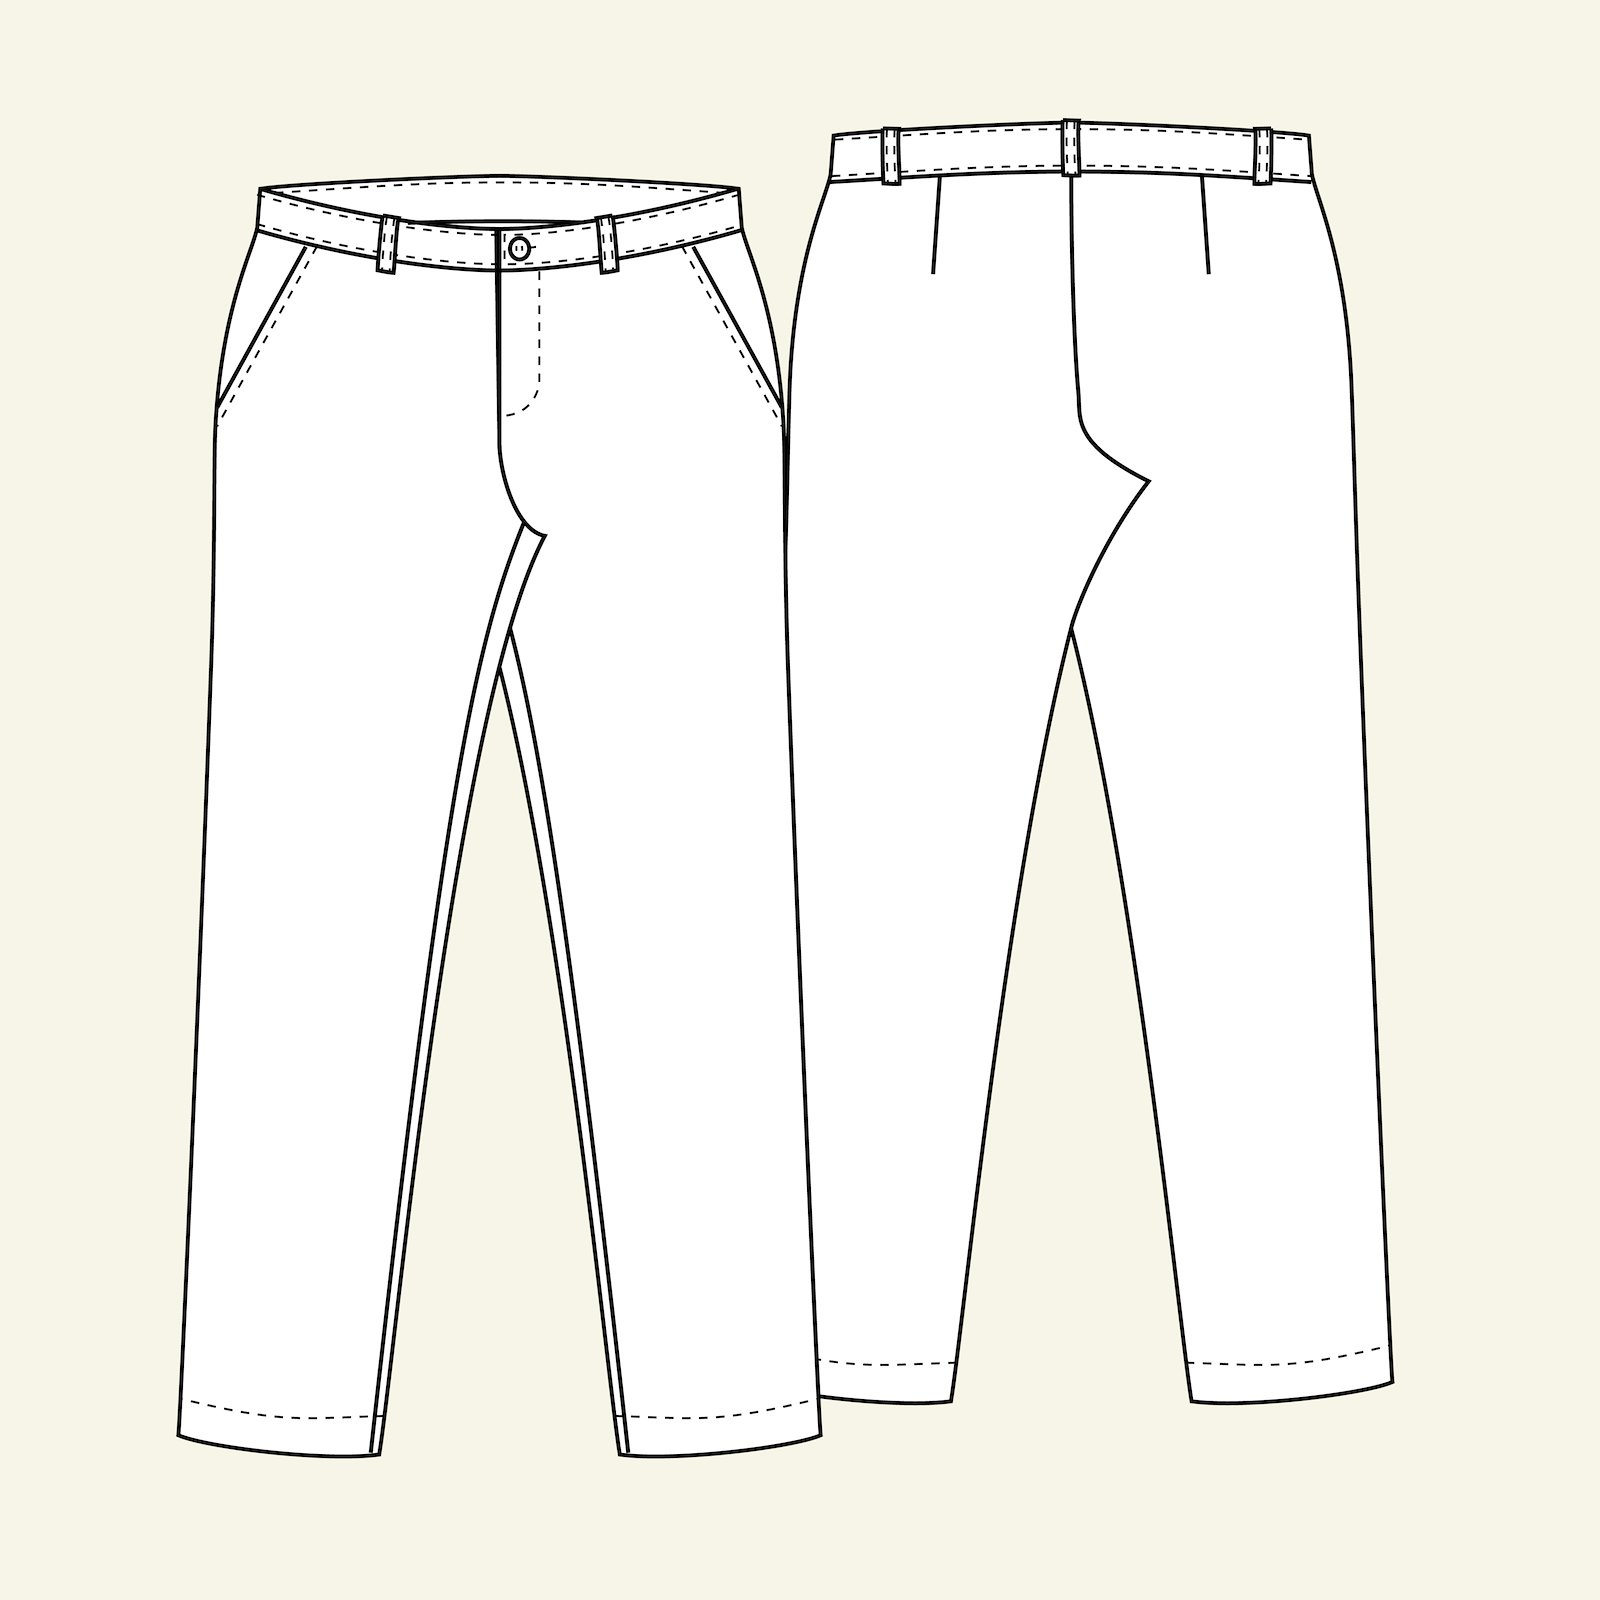 Trousers, 34/6 p20033_pack